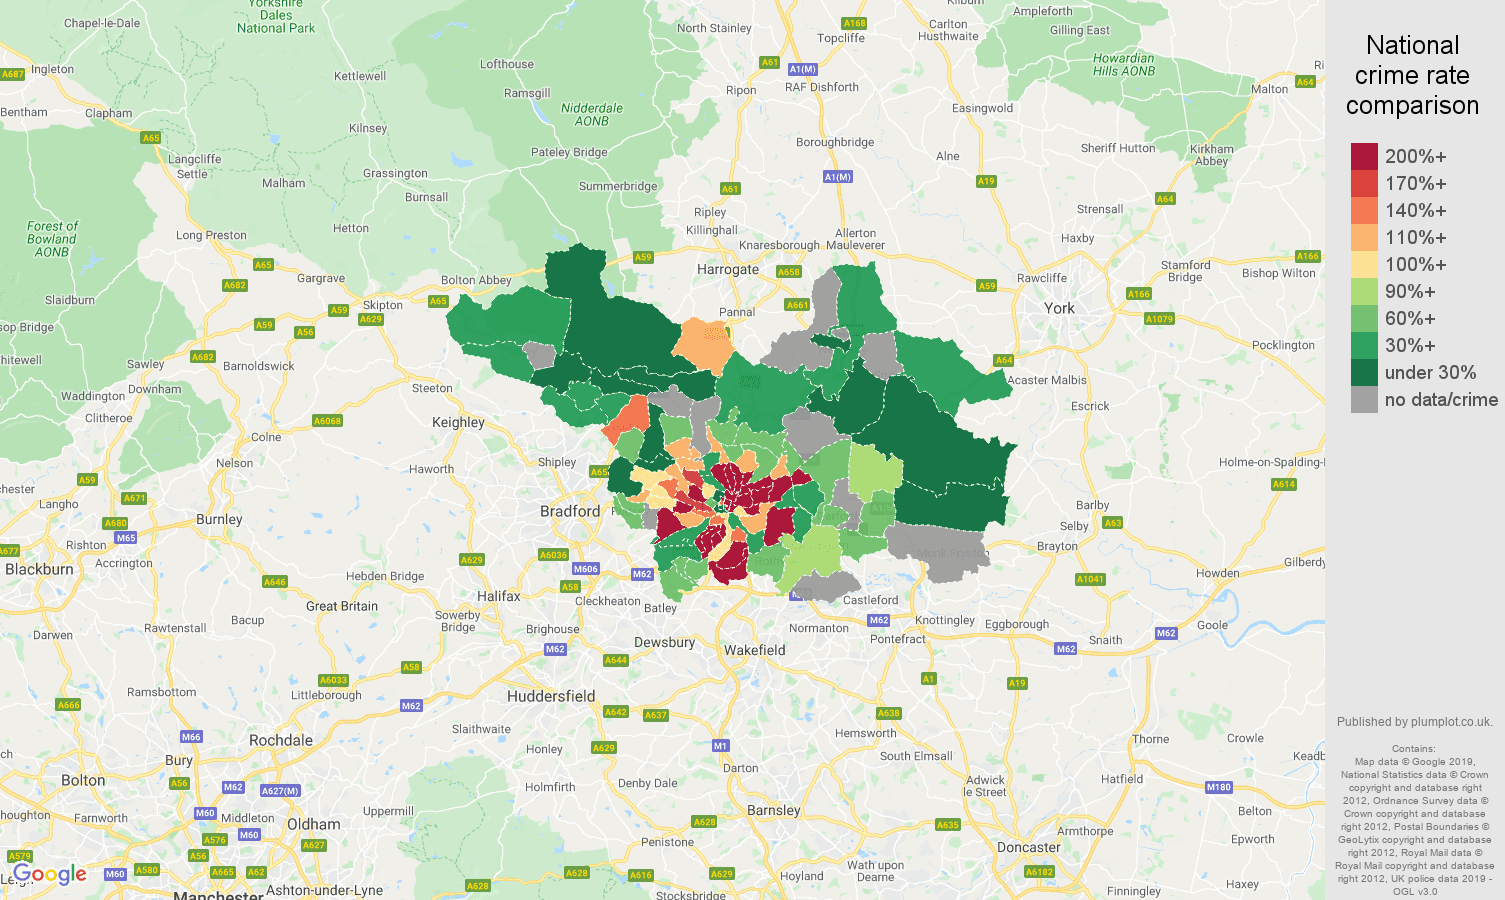 Leeds possession of weapons crime rate comparison map